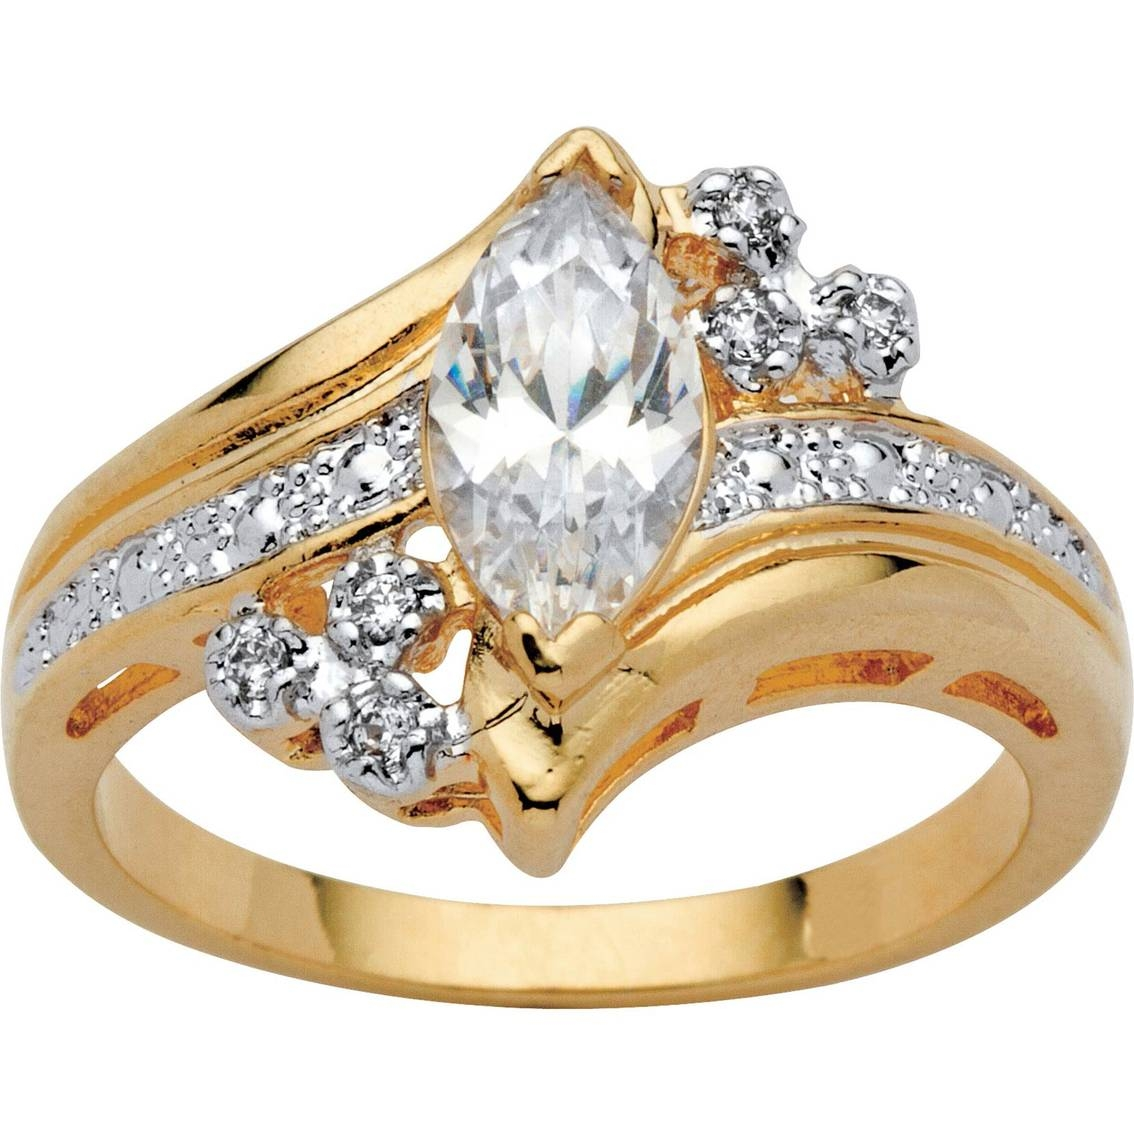 Palmbeach 14K Yellow Gold Plated Marquise Cut Cubic Zirconia With Regard To Most Popular Yellow Gold Anniversary Rings (View 21 of 25)